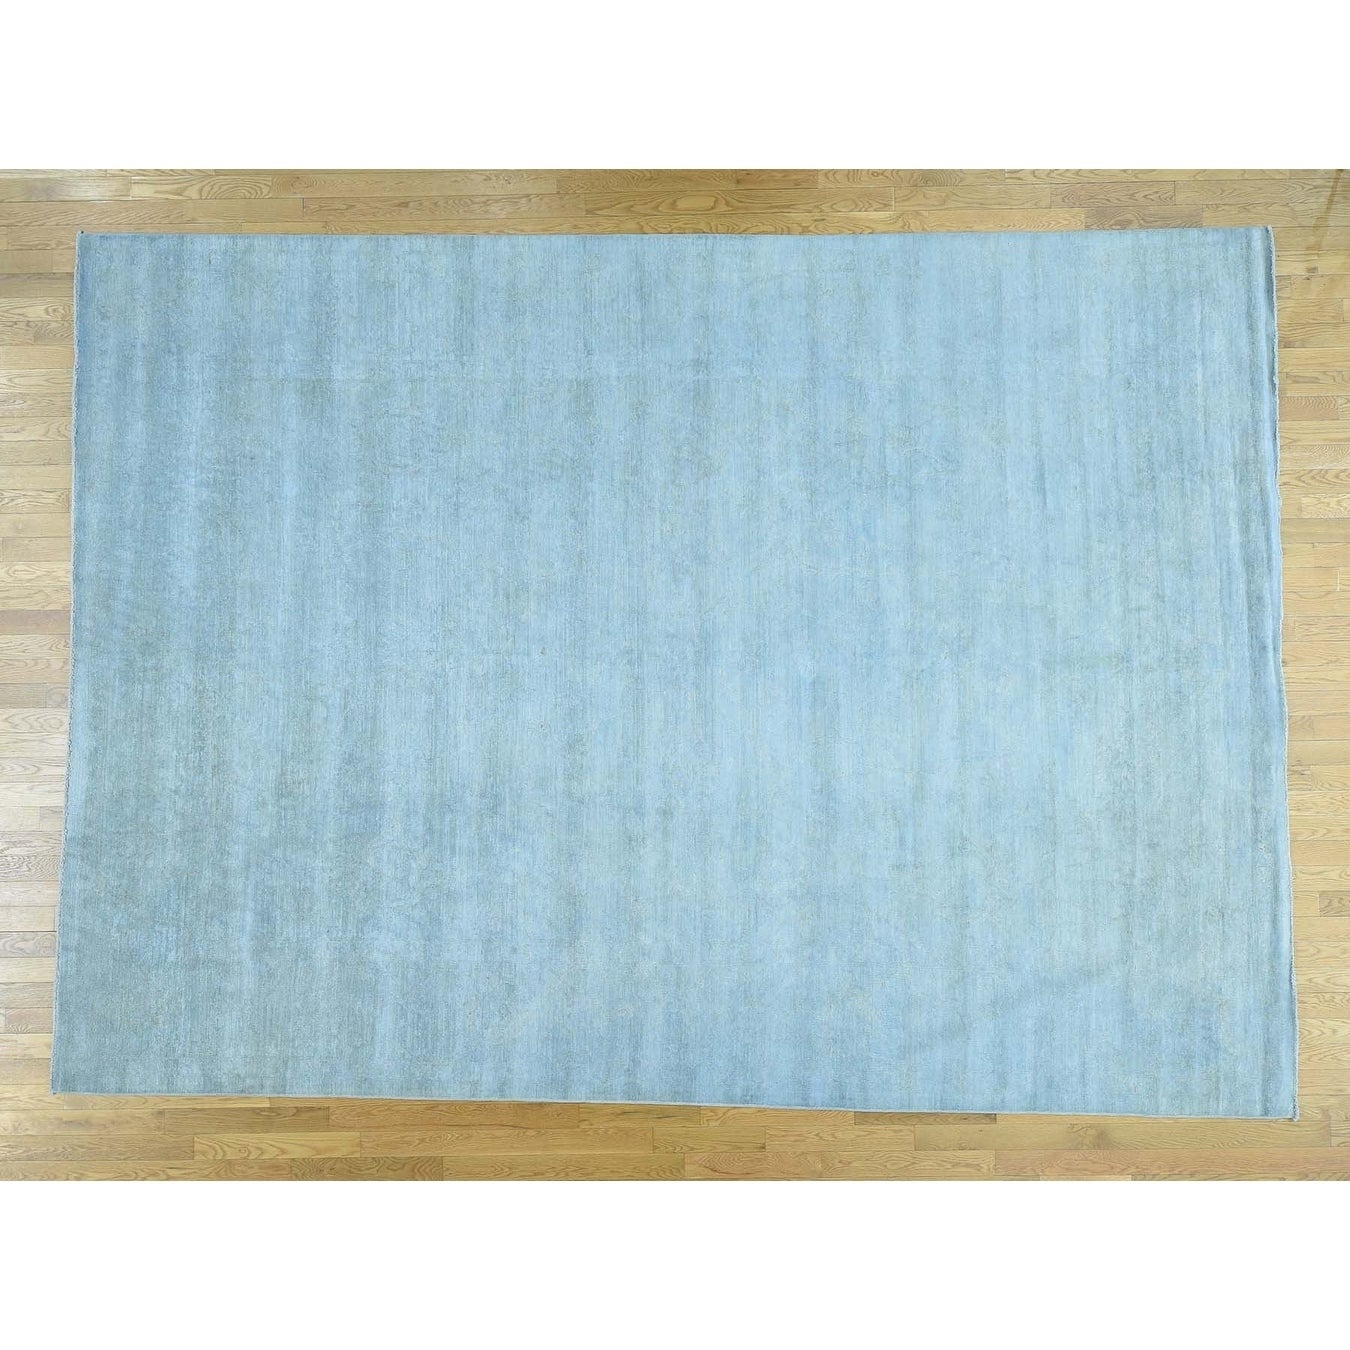 Hand Knotted Blue White Wash Vintage & Silver Wash with Wool Oriental Rug - 910 x 135